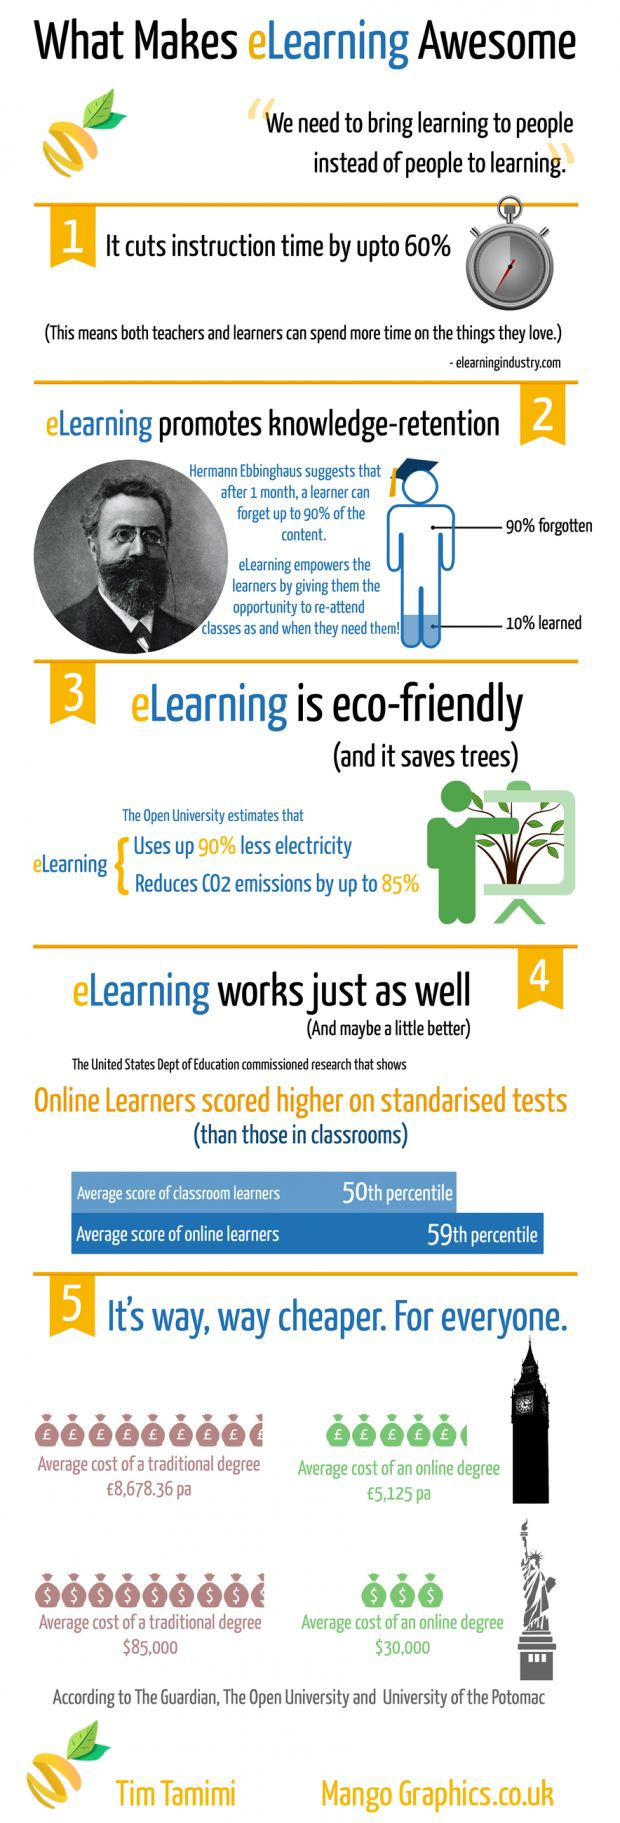 5 Reasons Why ELearning is Awesome. #elearning